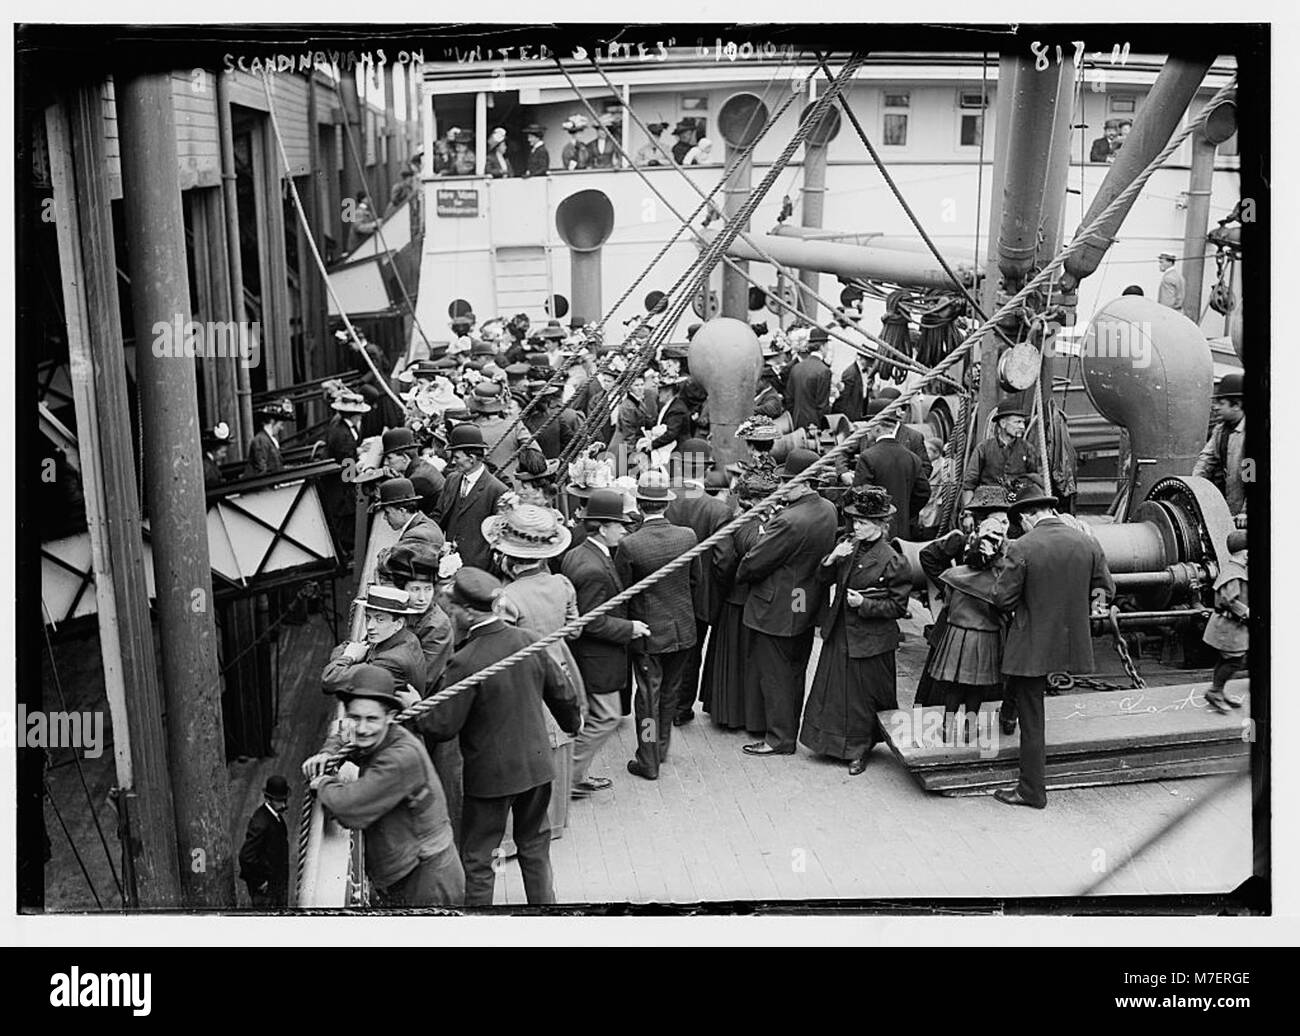 Scandinavians on deck of liner 'United States' LCCN2014683997 - Stock Image